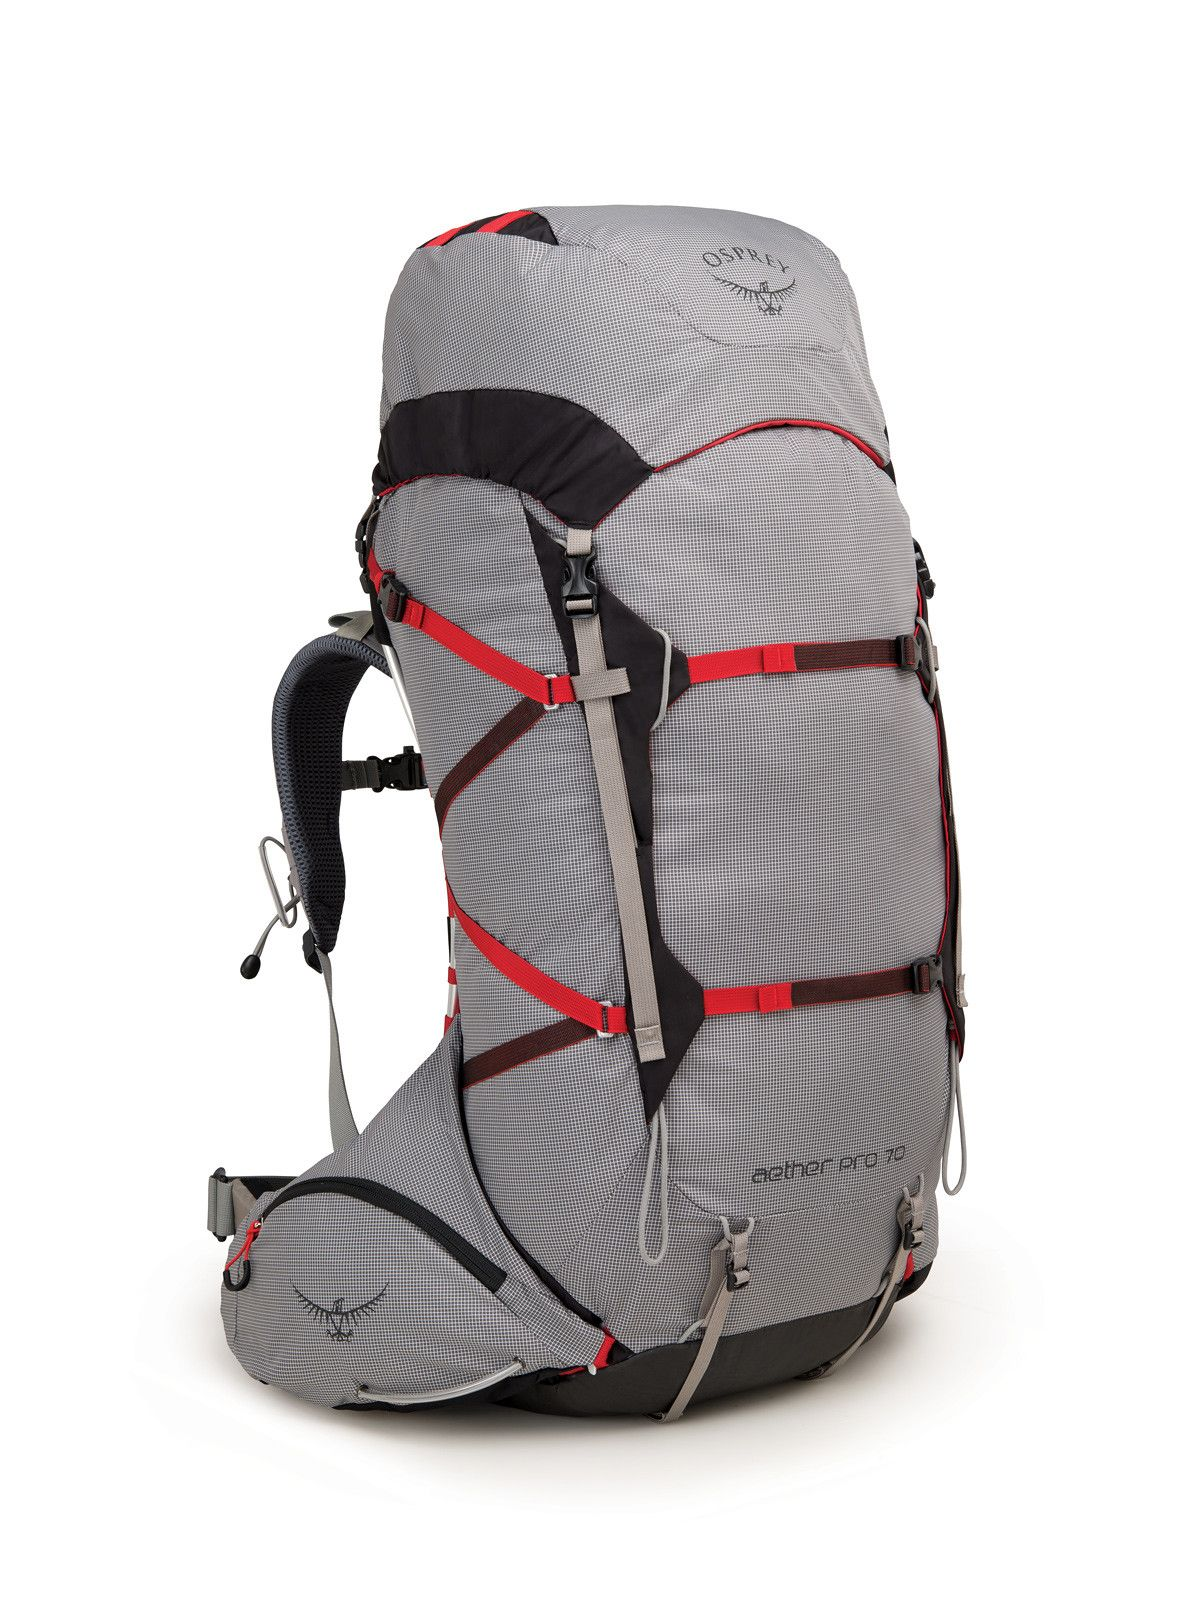 ea577b8d1a AETHER PRO 70 Osprey Packs